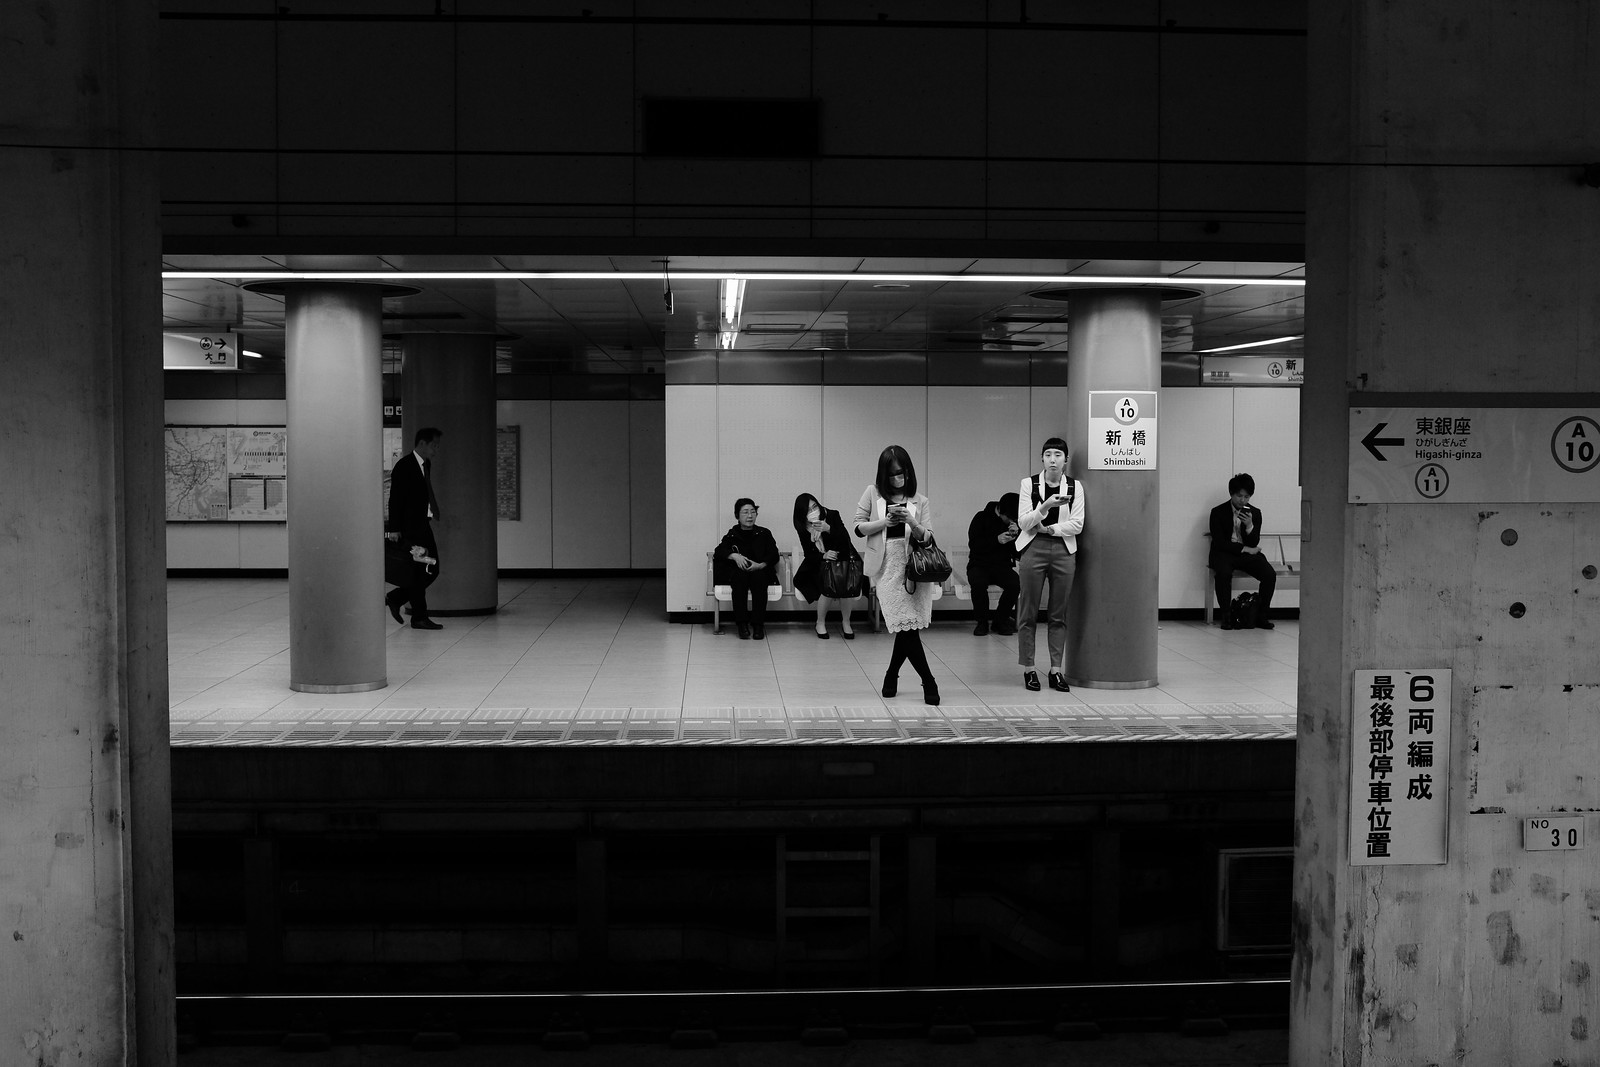 The shinbashi station taken by FUJIFILM X100s